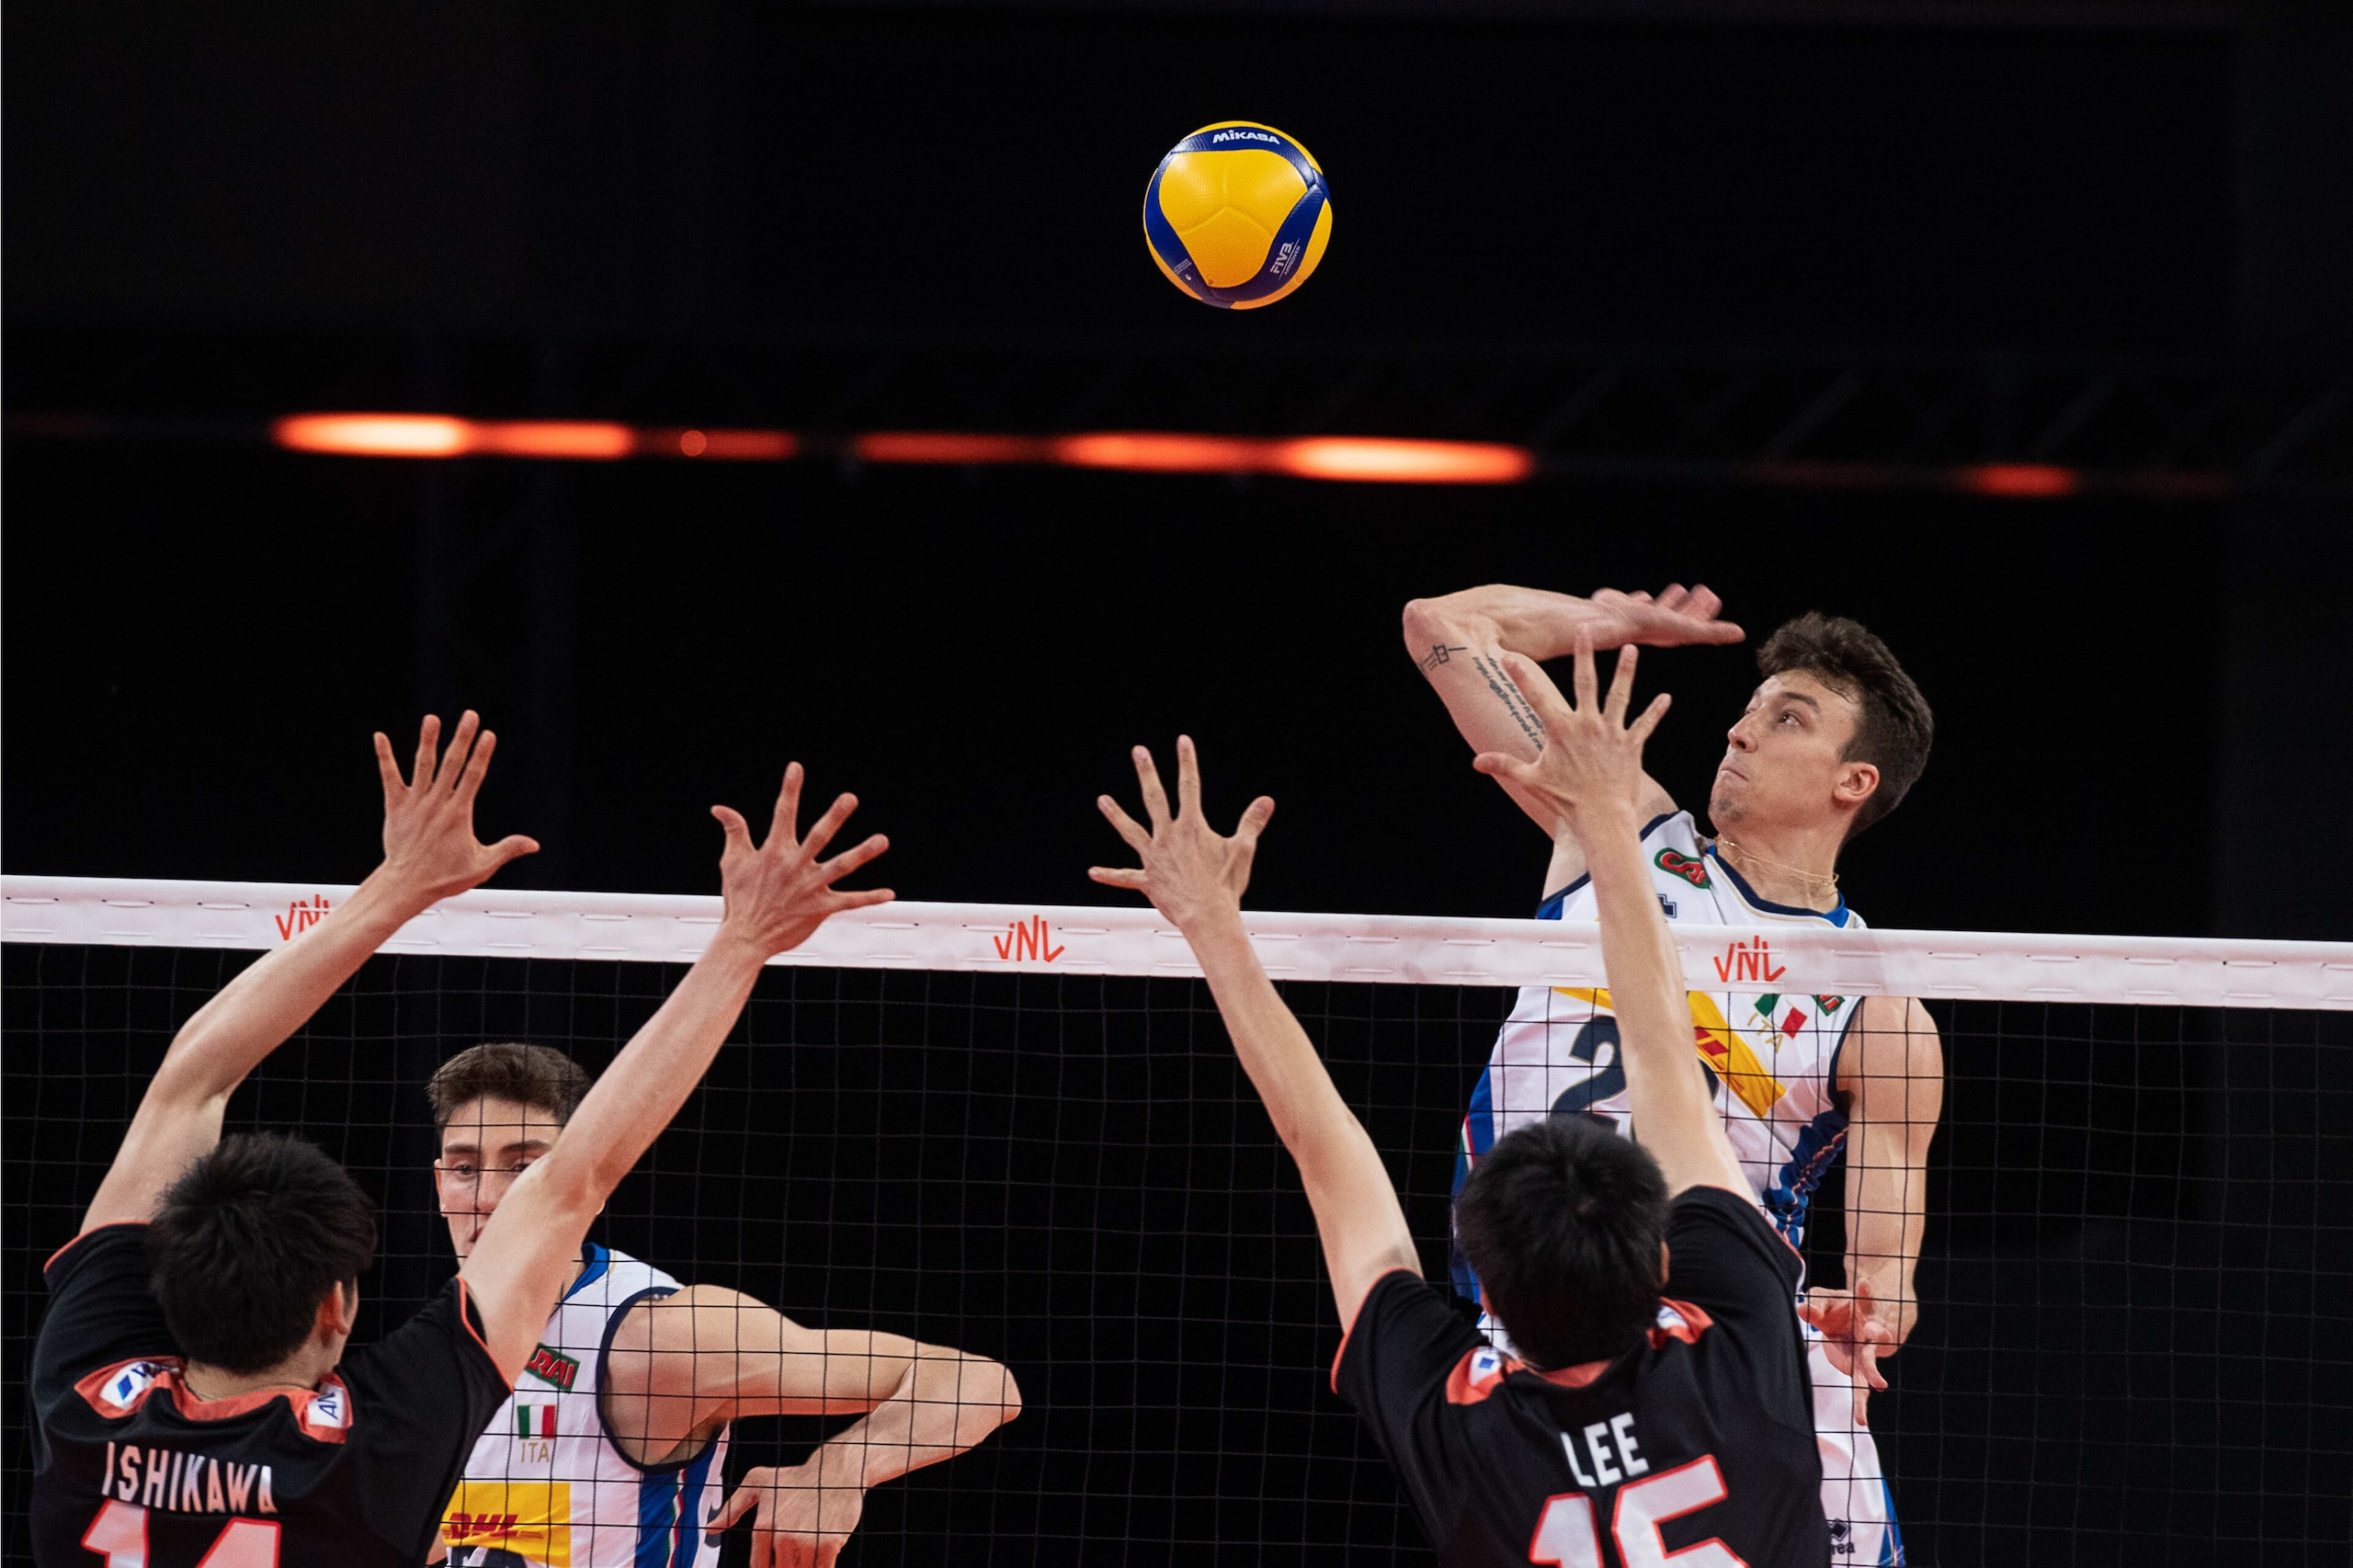 225317652 d5274411 1aea 40e5 9720 d45cb1d6e144 - VNL: Italia ko in cinque set col Giappone